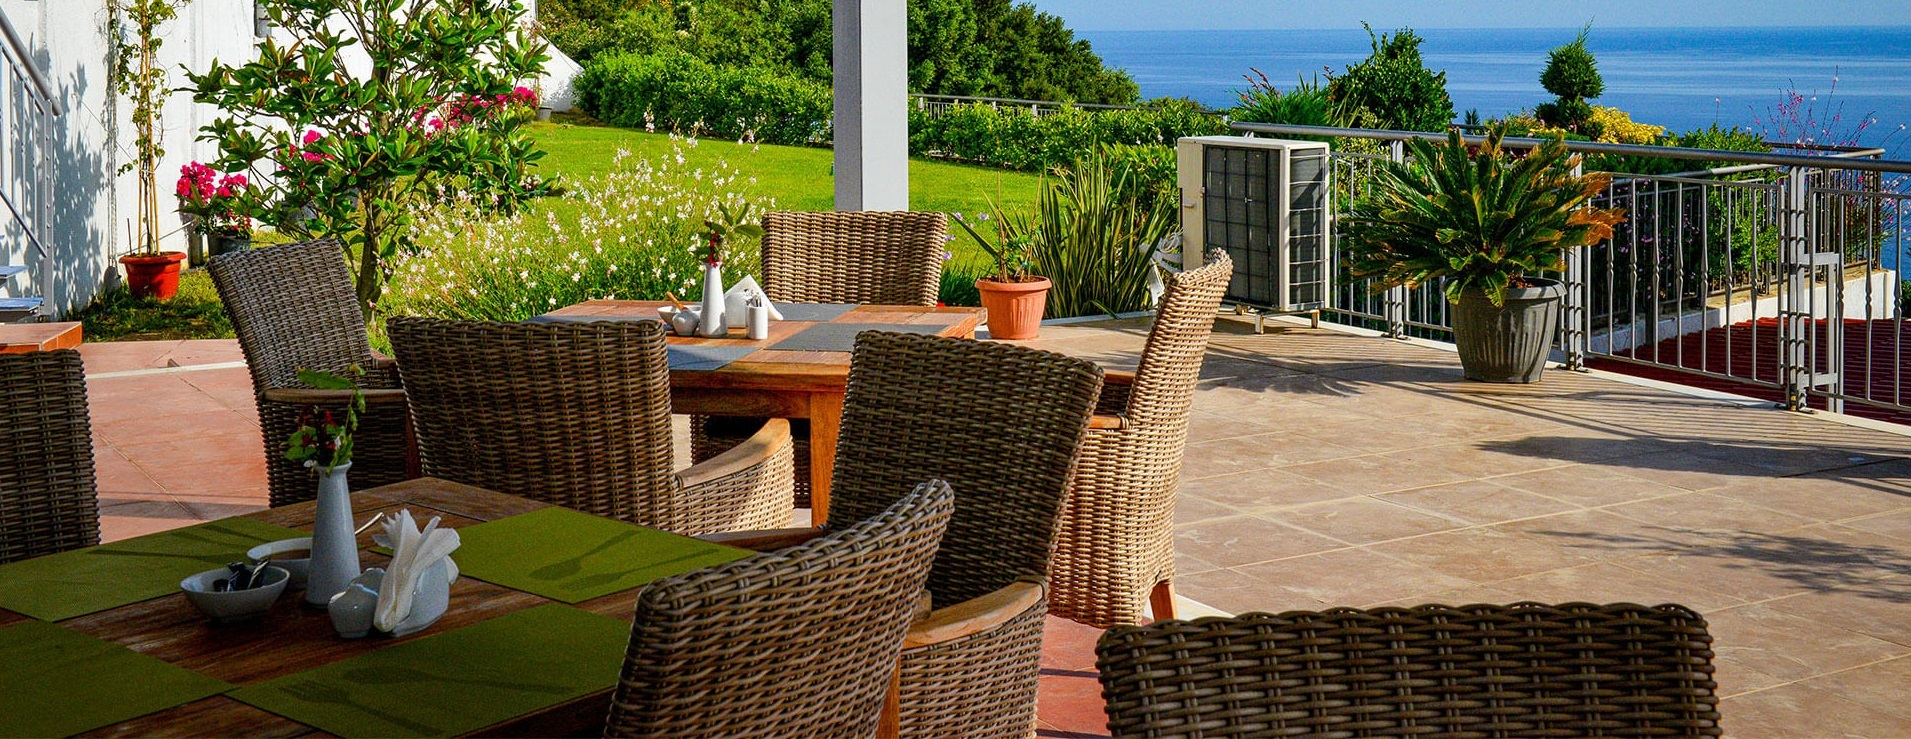 What is AN outdoor dining room?